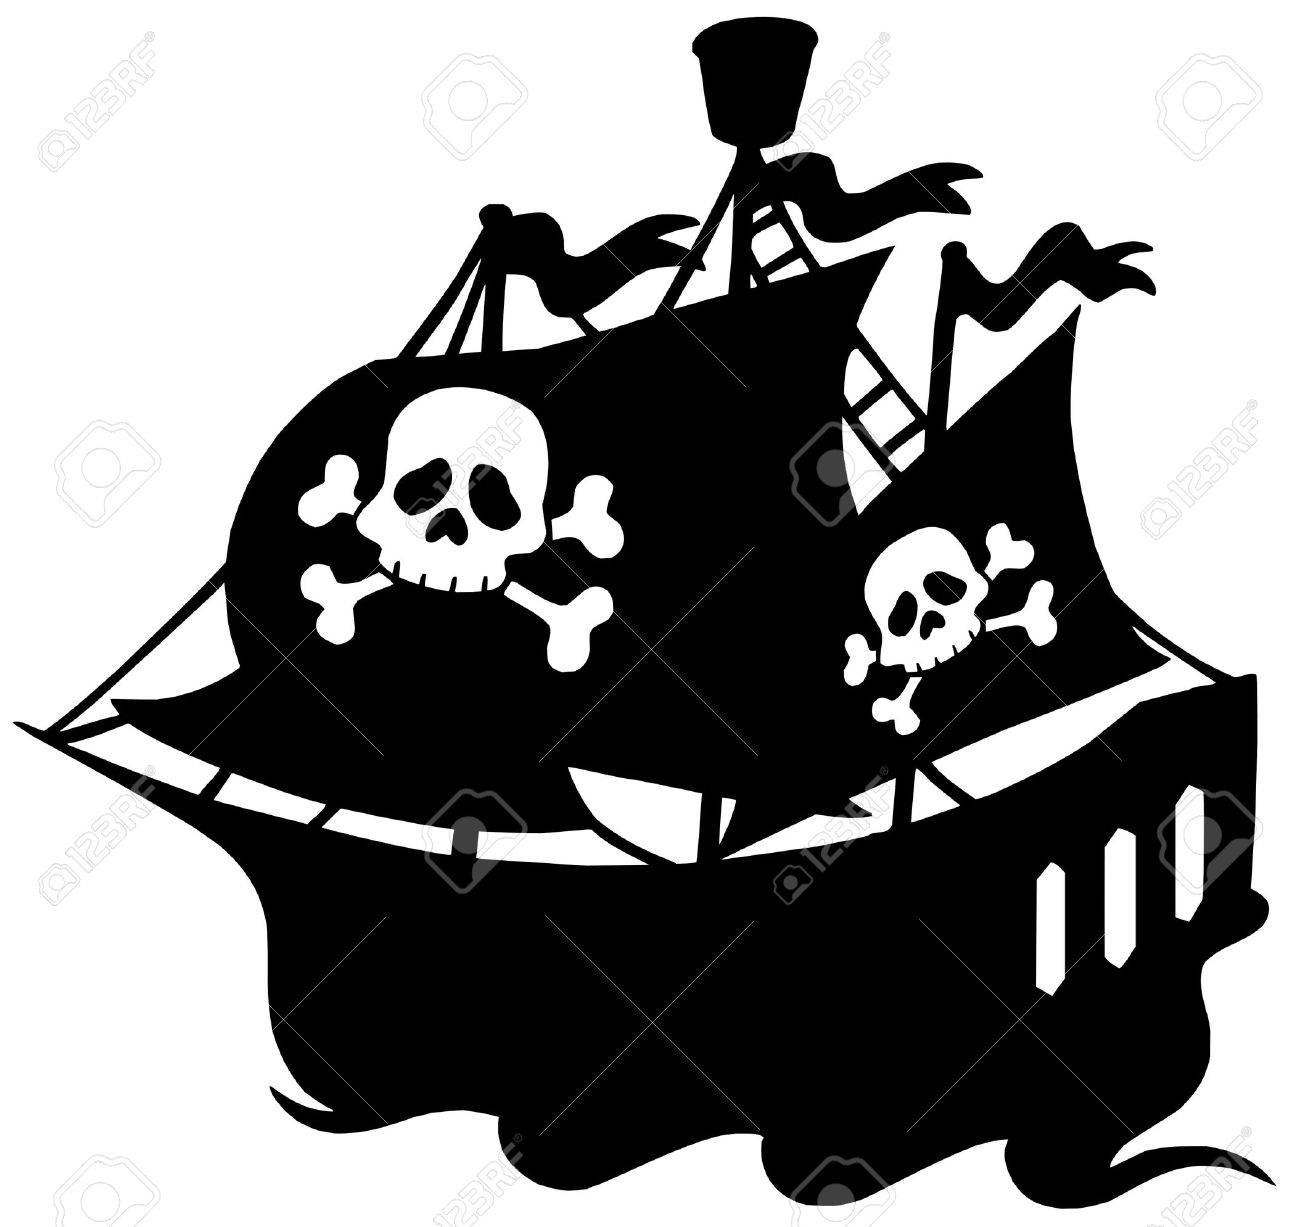 pirate ship silhouette vector illustration royalty free cliparts rh 123rf com cartoon pirate ship vector pirate ship vector image